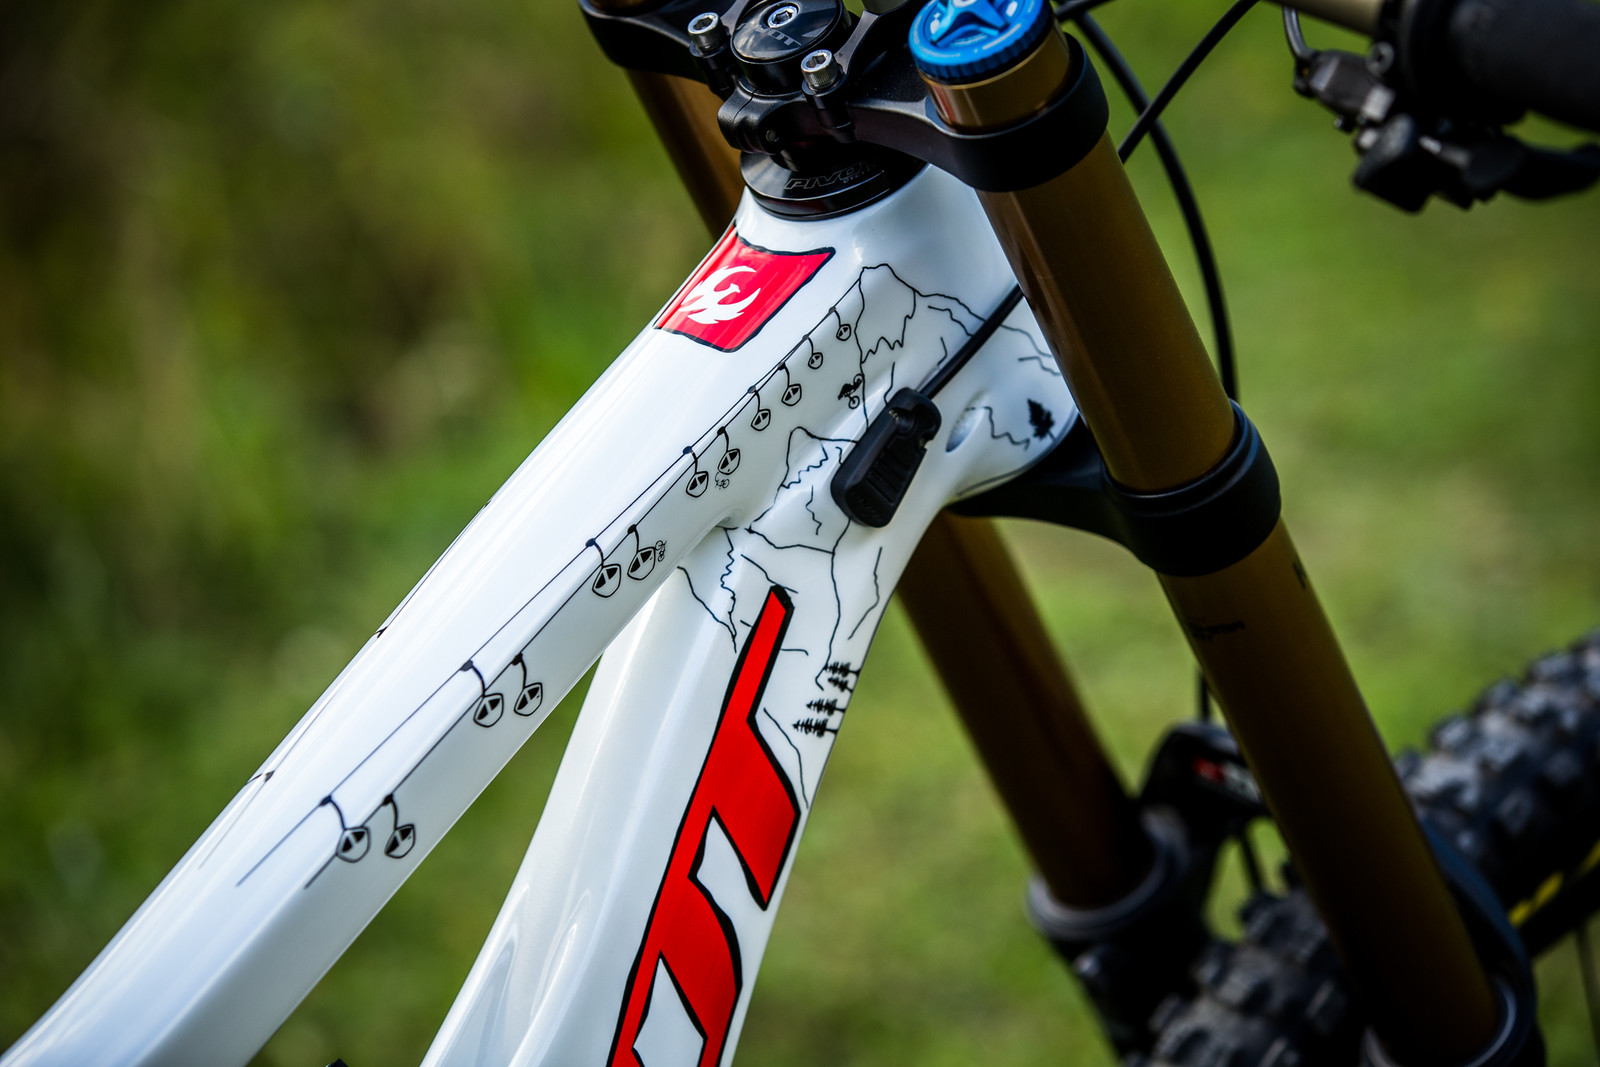 Top Tube - WORLD CHAMPS BIKE - Emilie Siegenthaler's Pivot Phoenix - Mountain Biking Pictures - Vital MTB